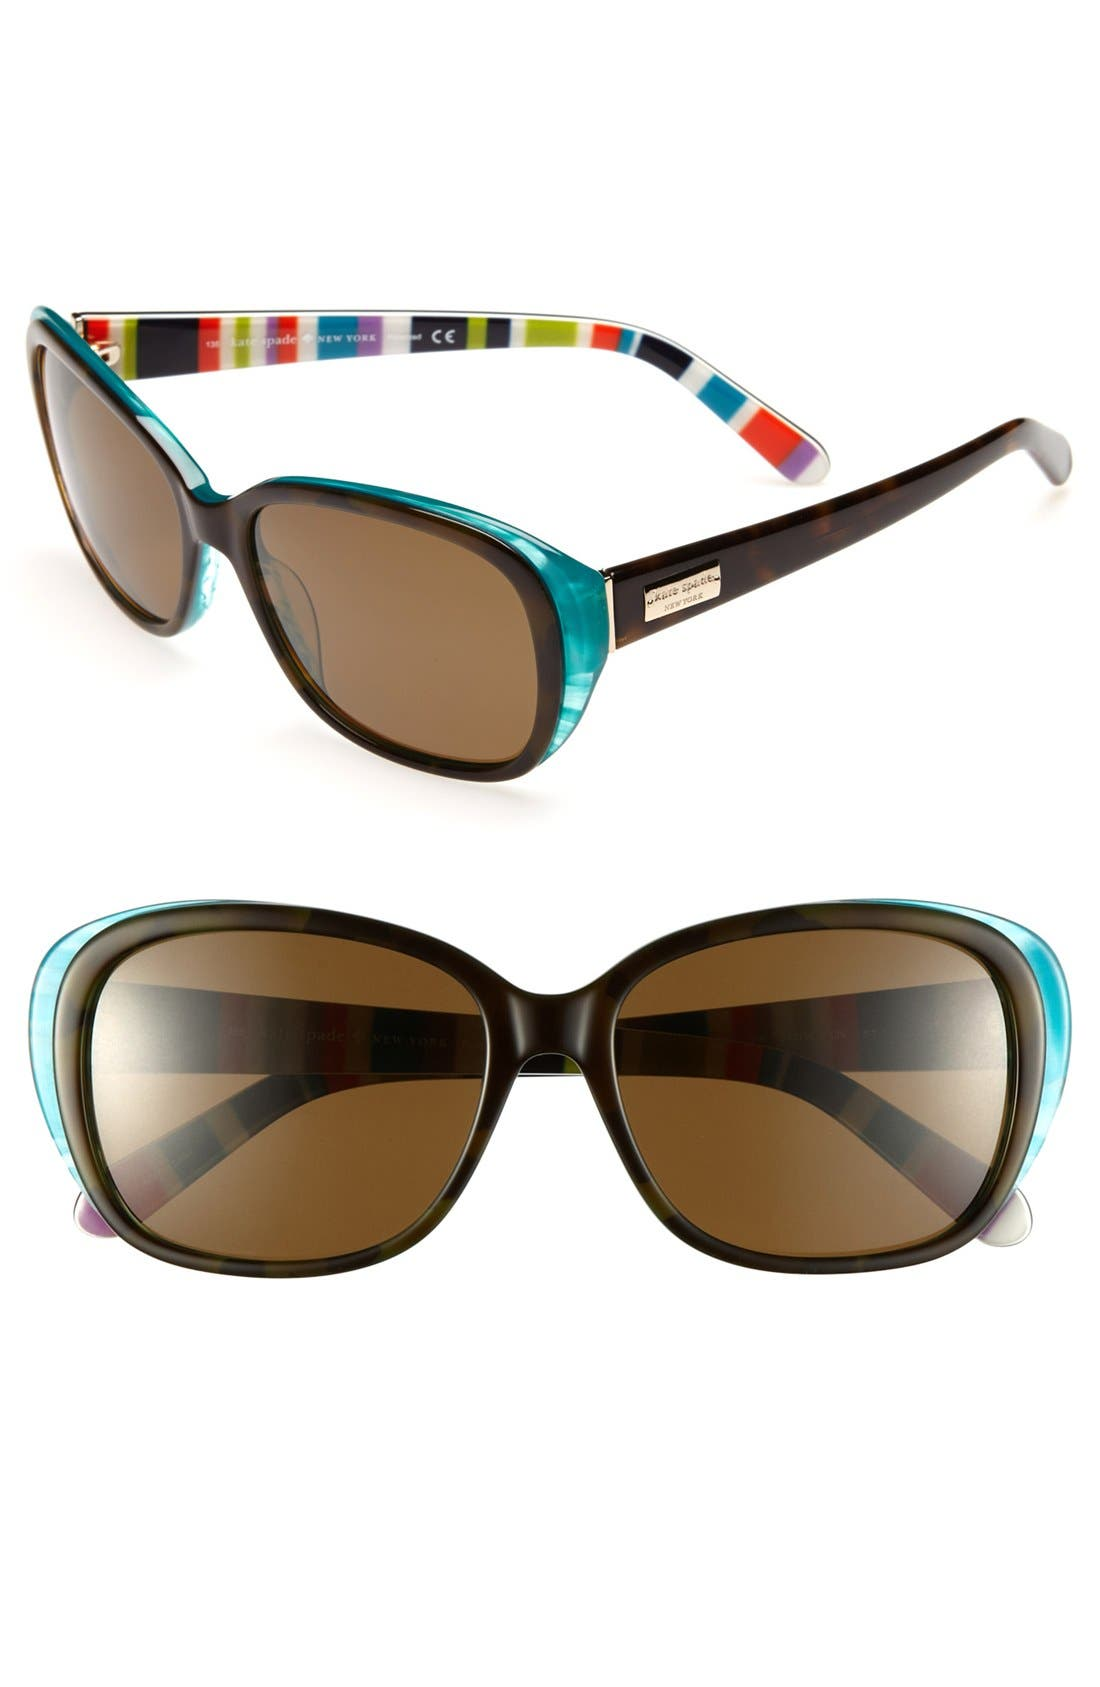 Main Image - kate spade new york 'hilde' 54mm polarized sunglasses